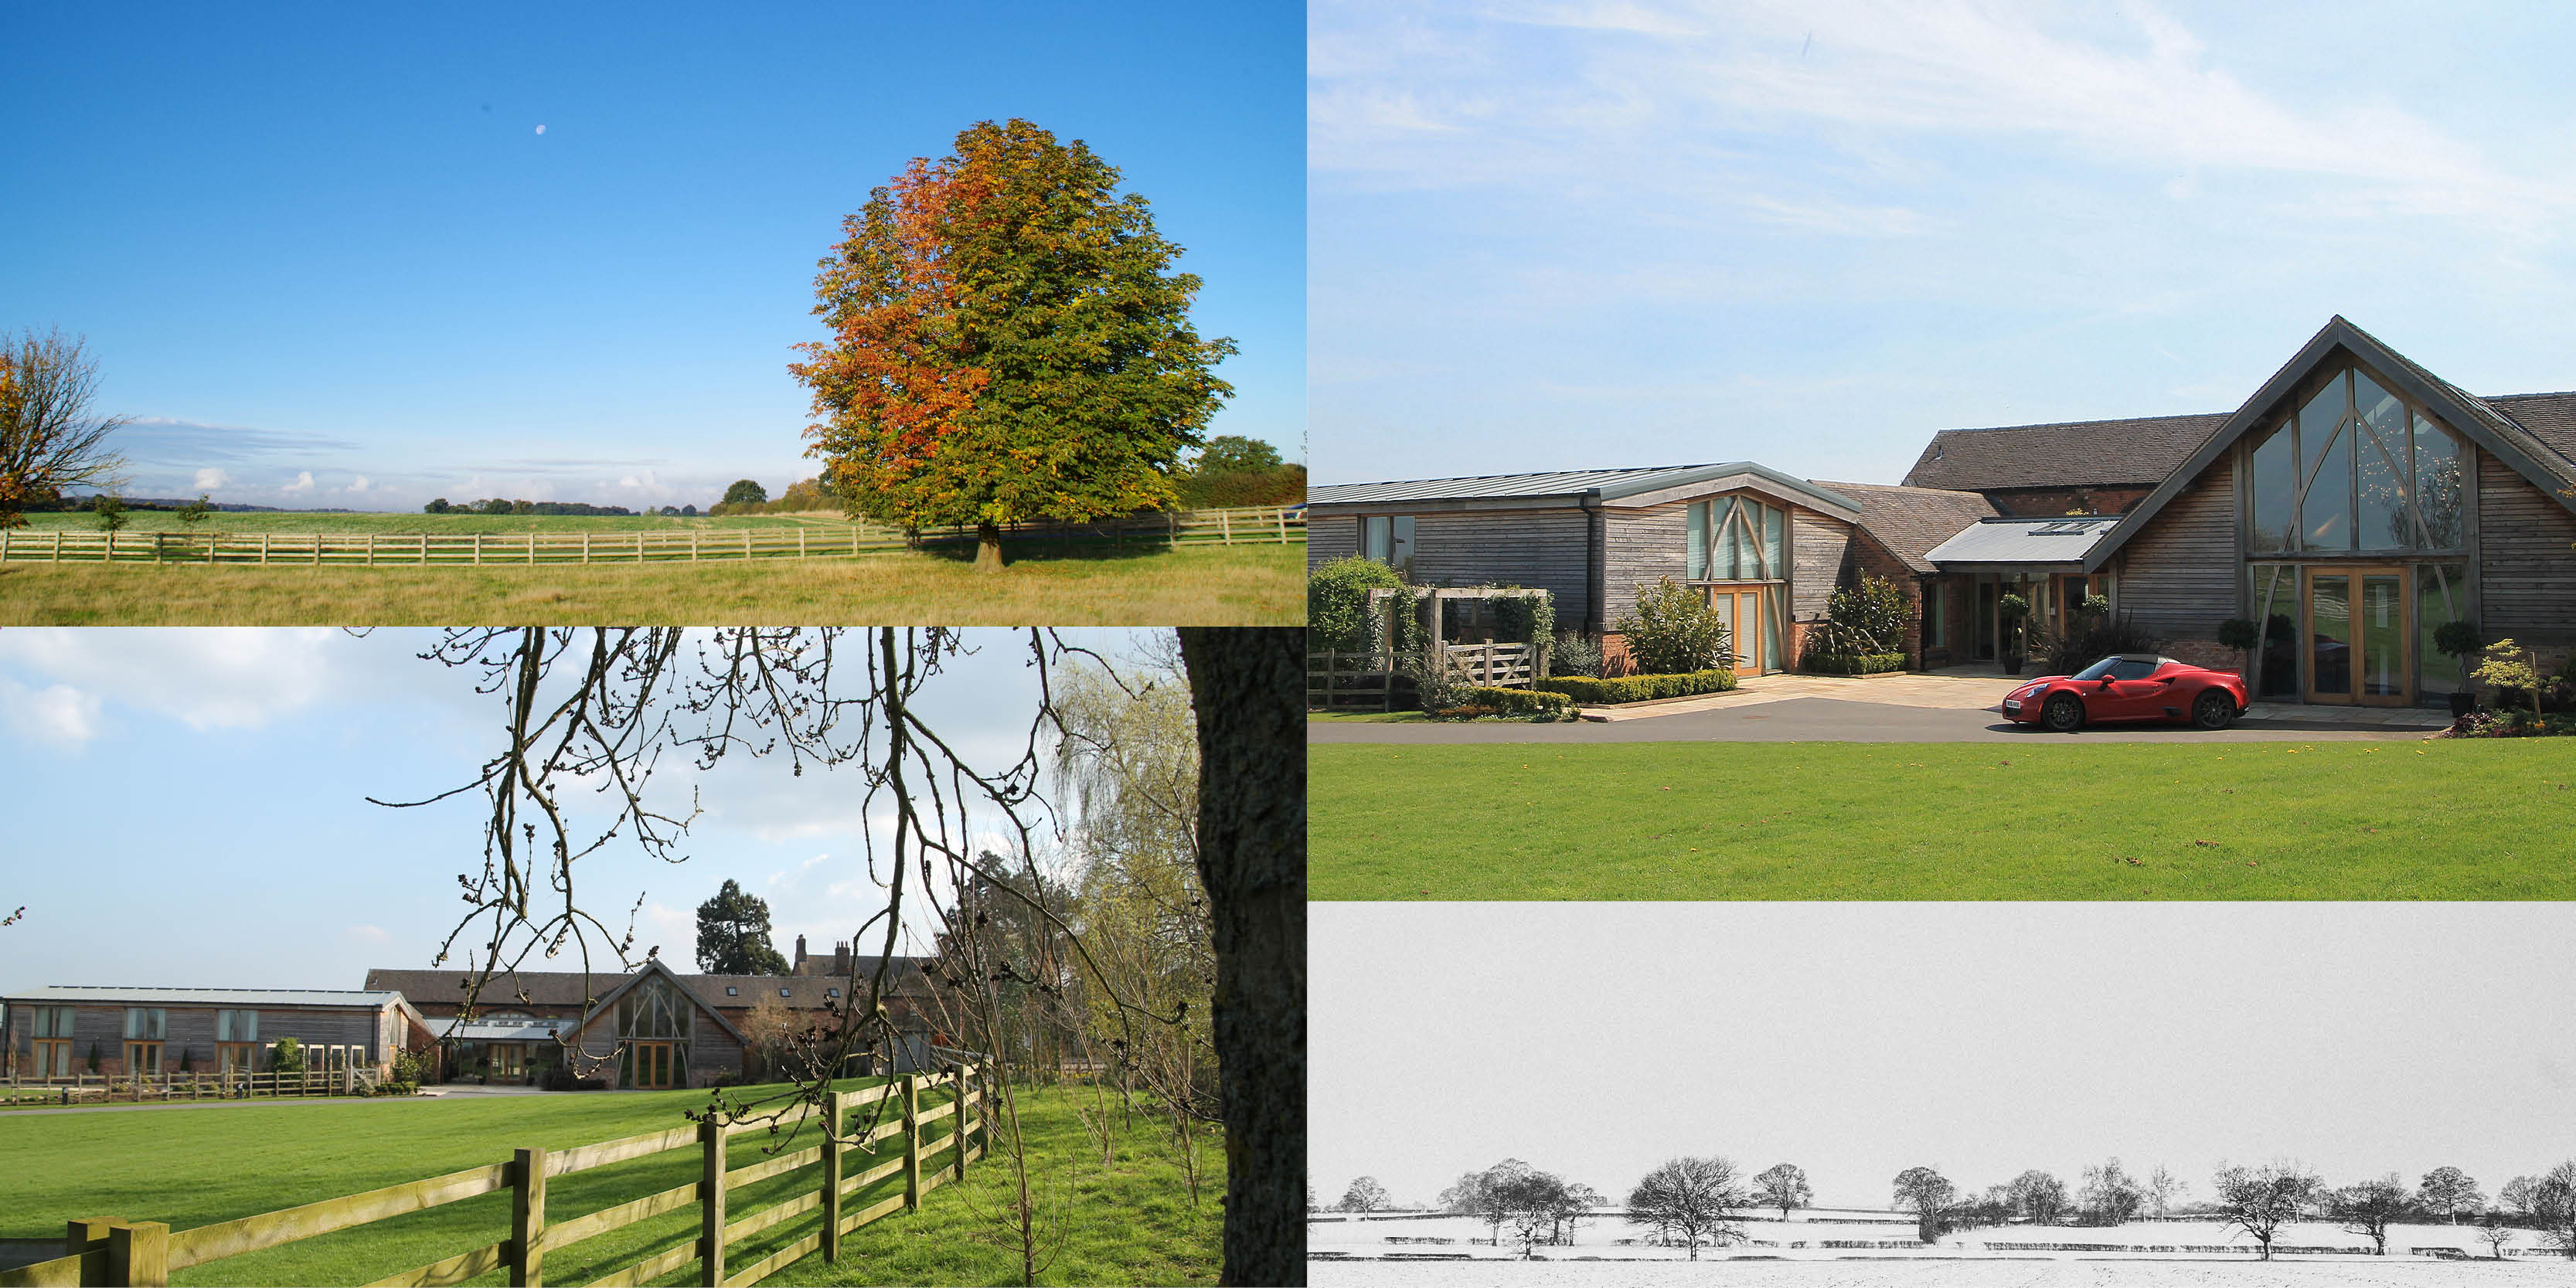 meetings and conference venues in the countryside